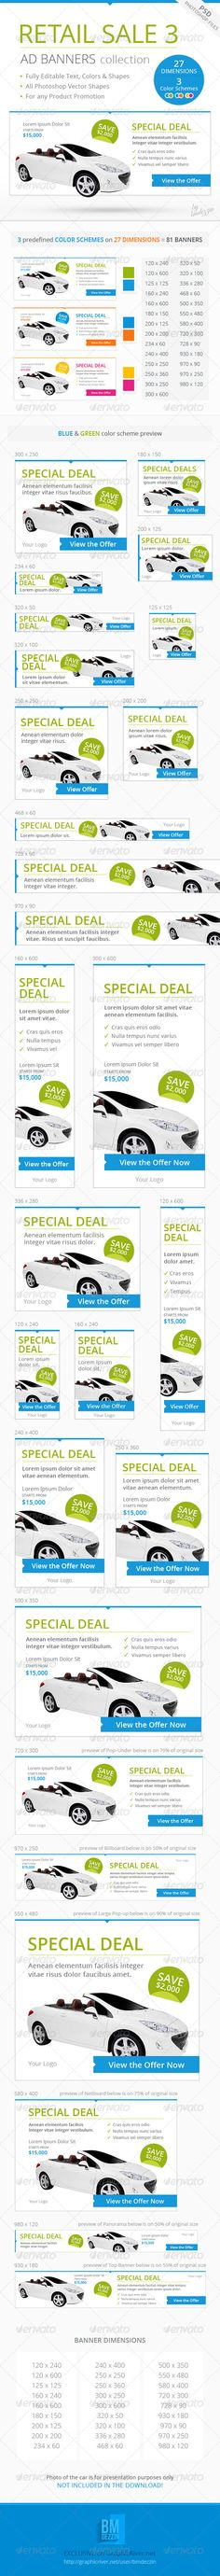 Gift Shop Flyer Poster Template - 3 - car for sale flyer template